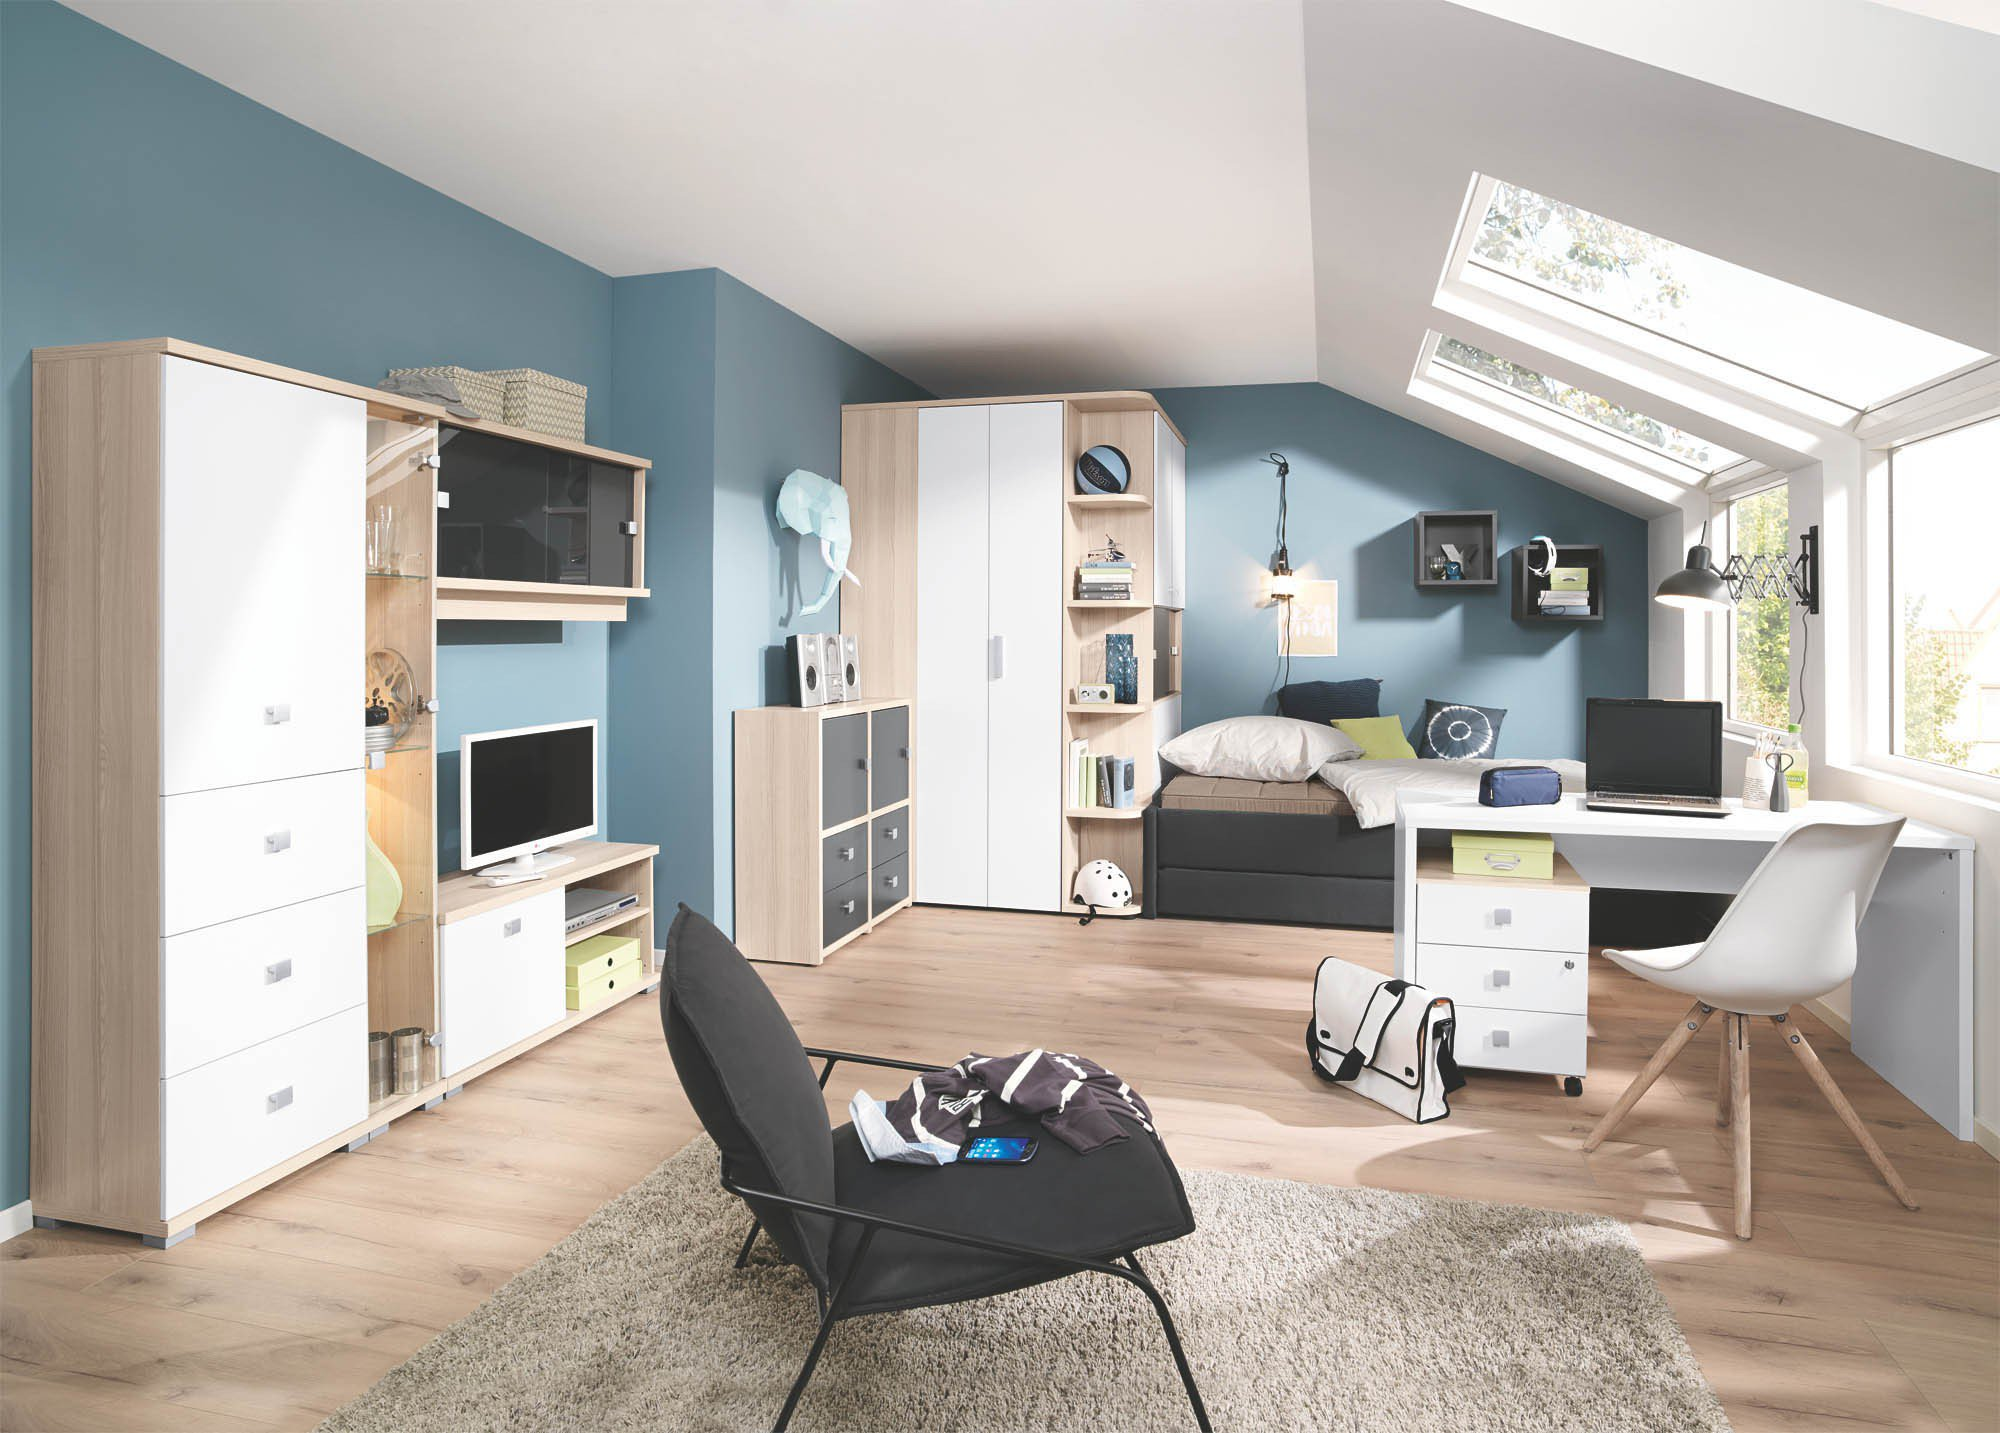 Welle jugendzimmer unlimited eckschrank liege m bel for Jugendzimmer shop